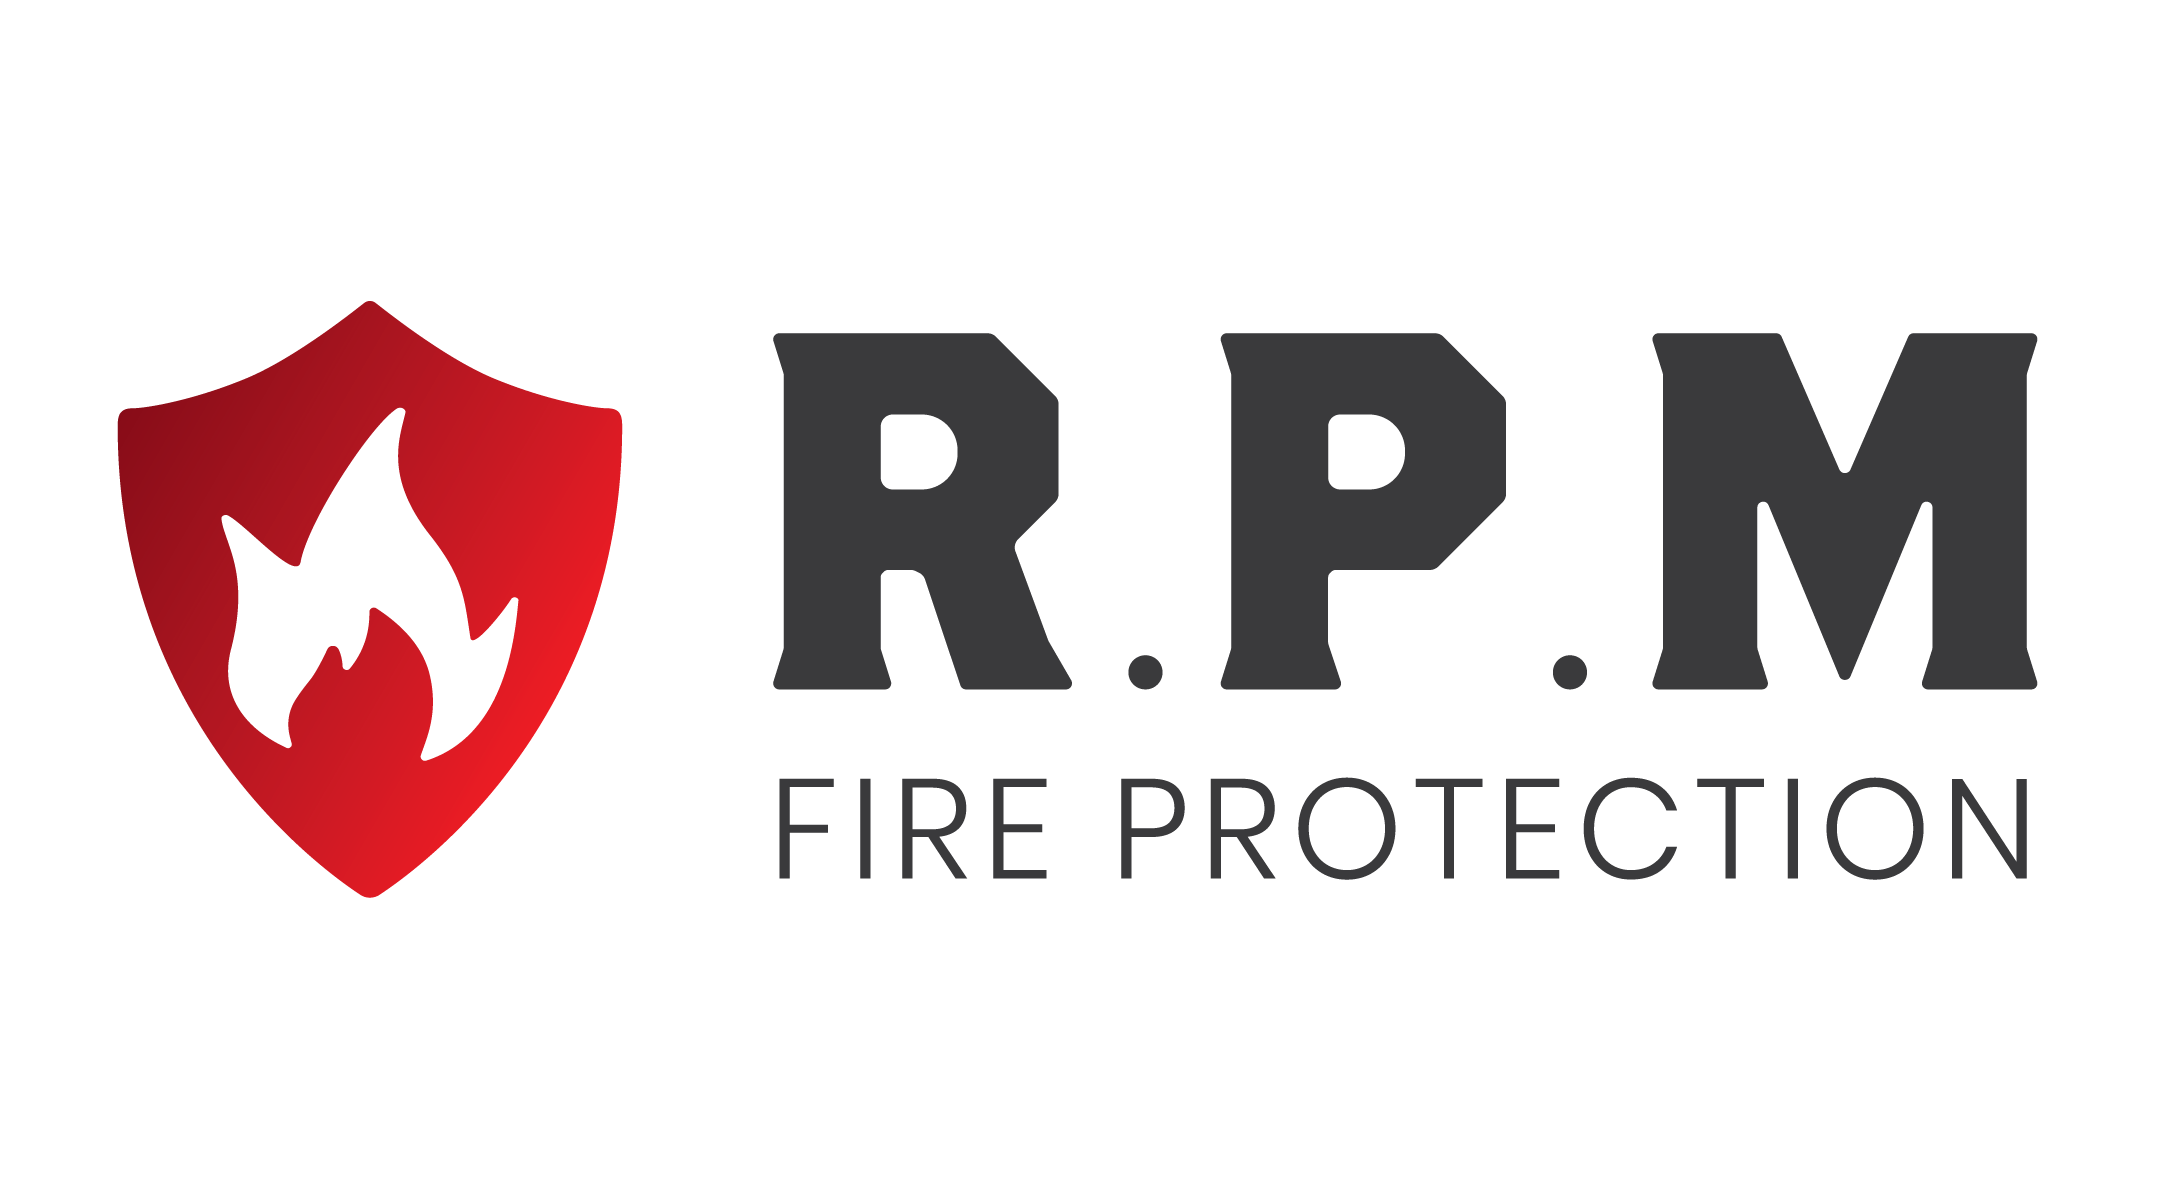 Rpmfireprotection.com